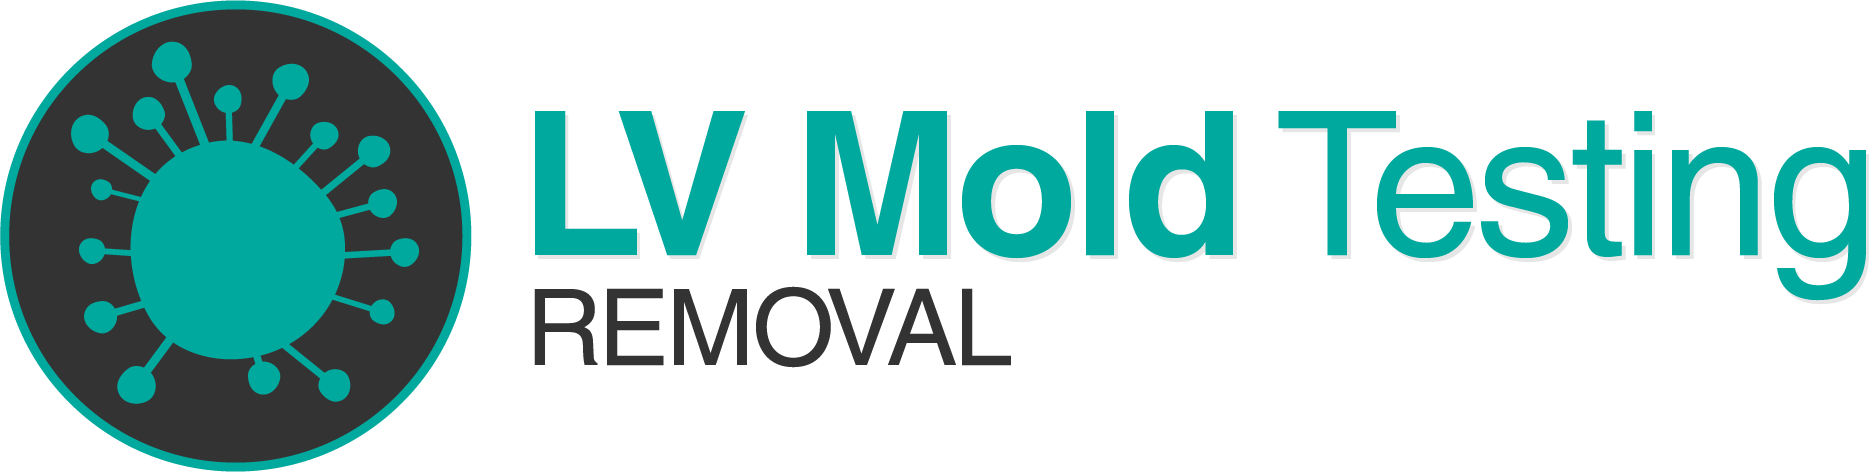 LV Mold Testing Removal